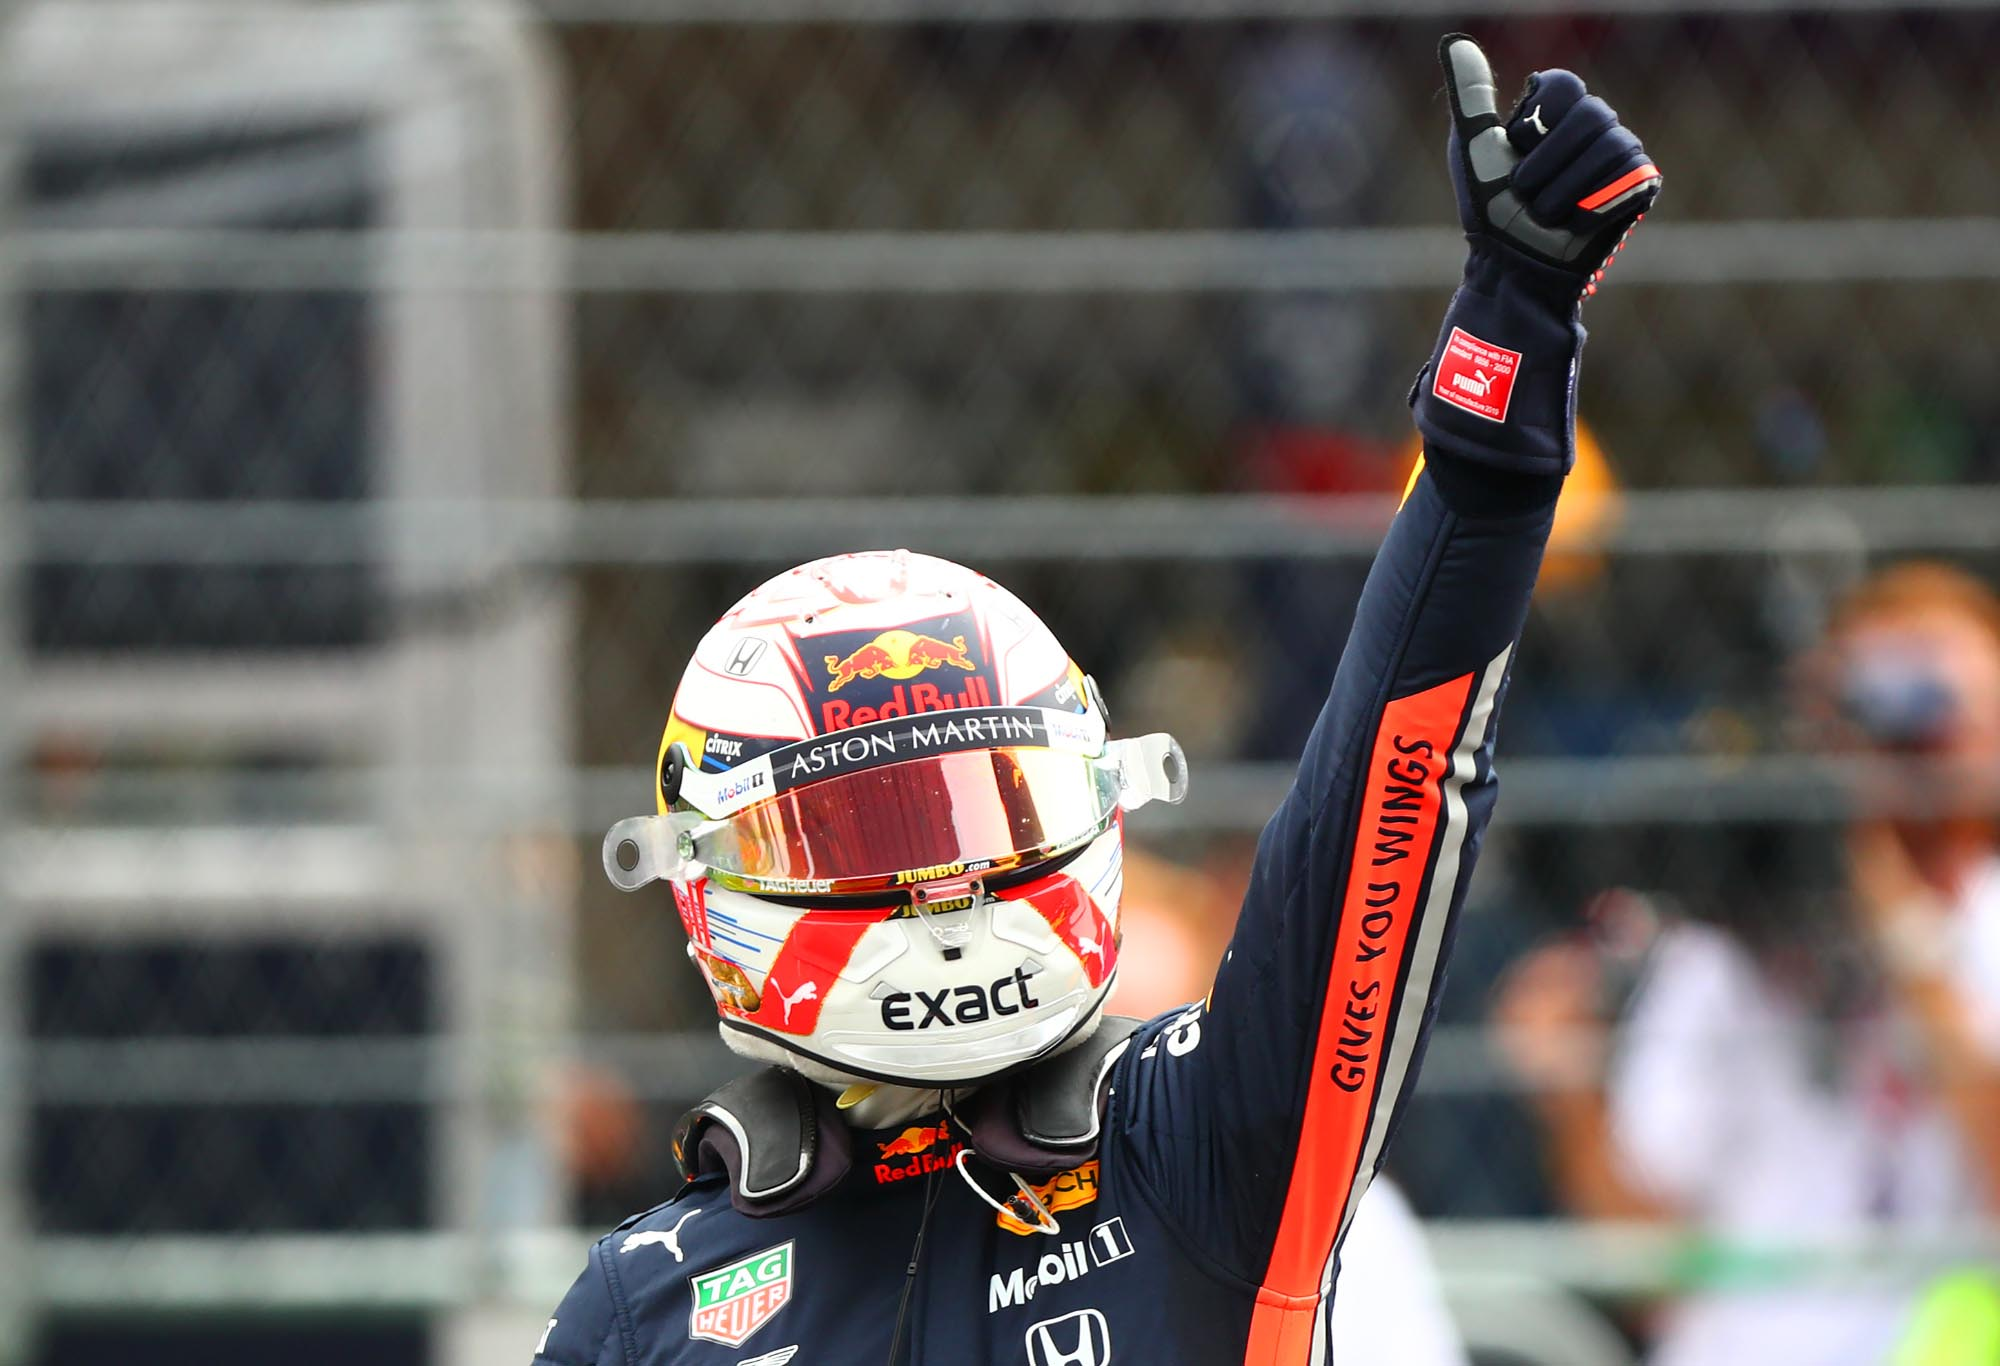 Max Verstappen gives a thumbs up to the crowd after scoring pole at the 2019 Mexican Grand Prix